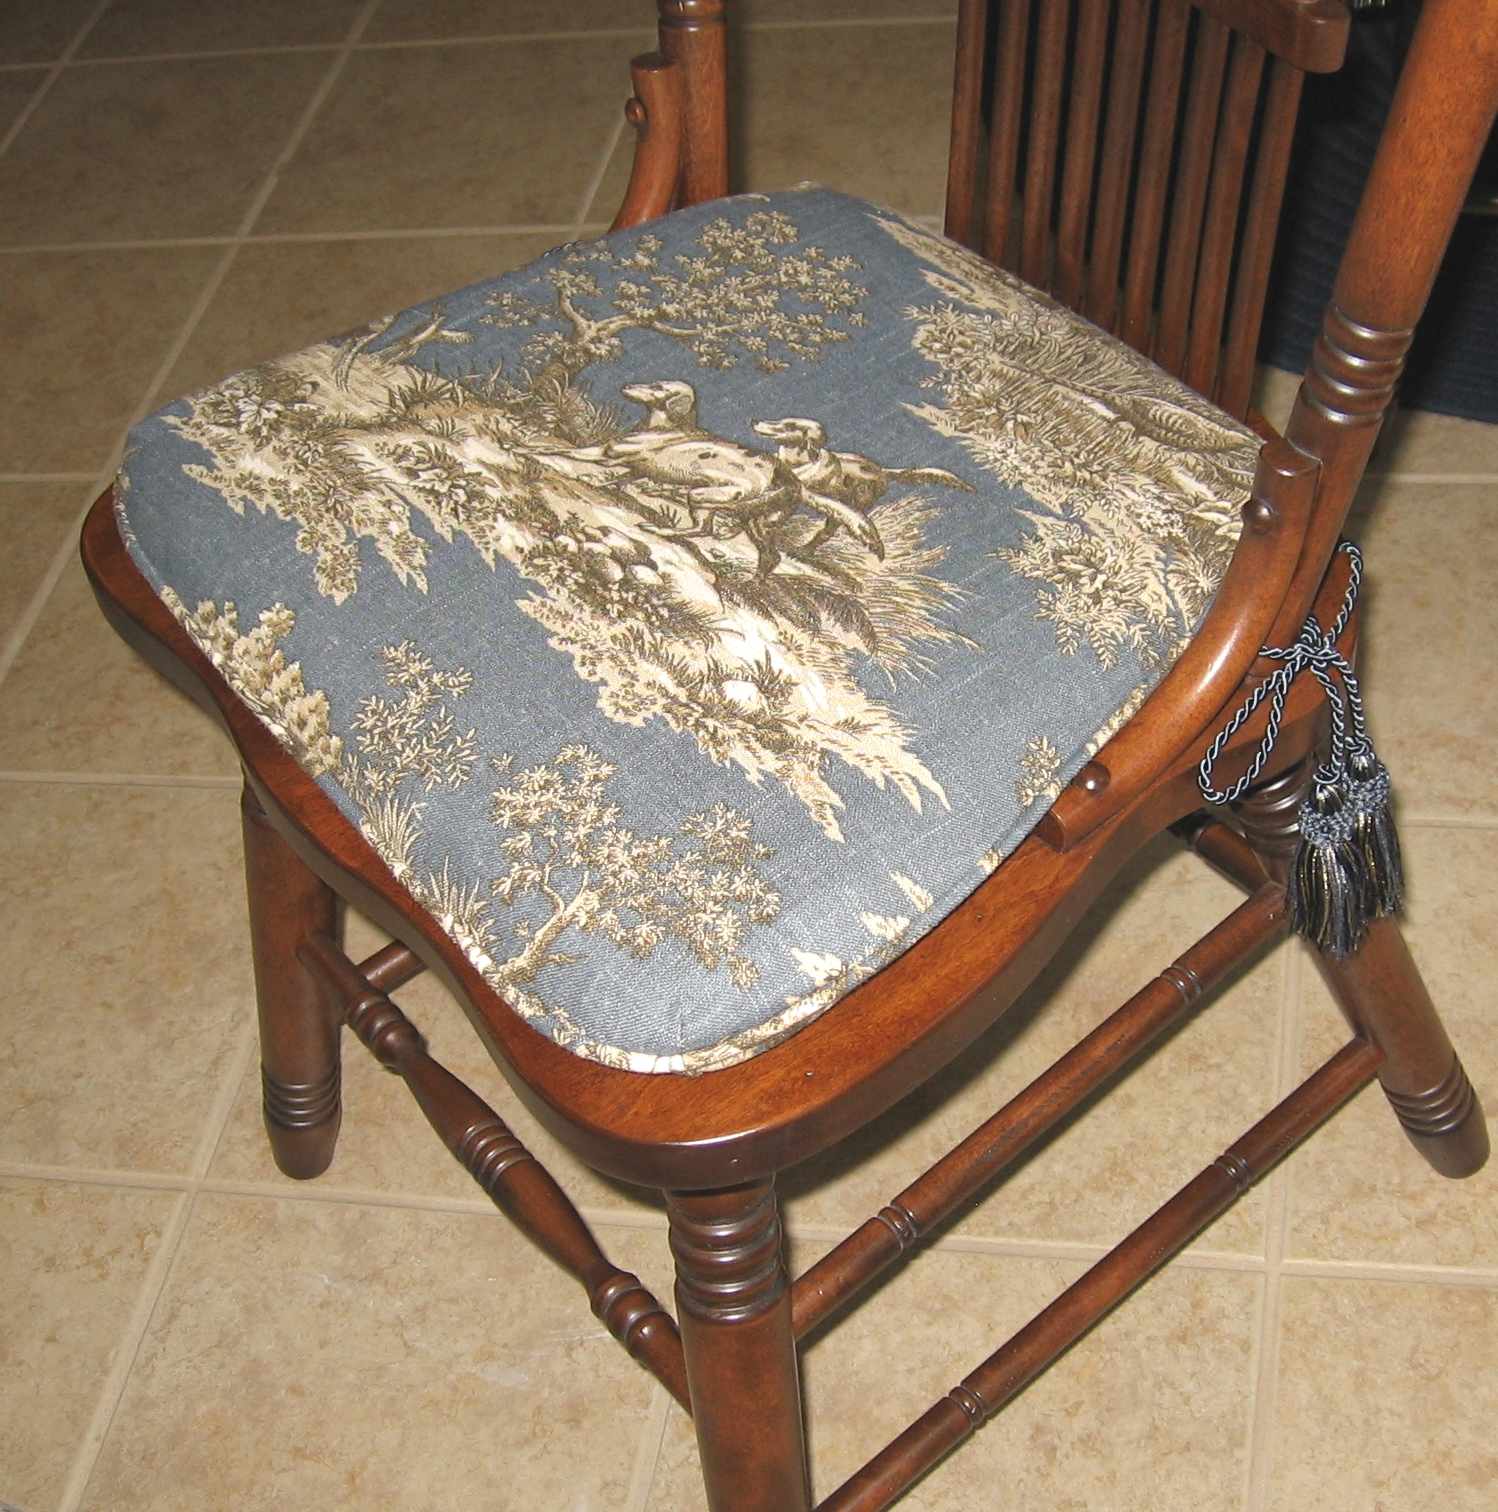 Chair Cushions For Kitchen Chairs Custom Upholstery Reupholstery In O 39fallon Il